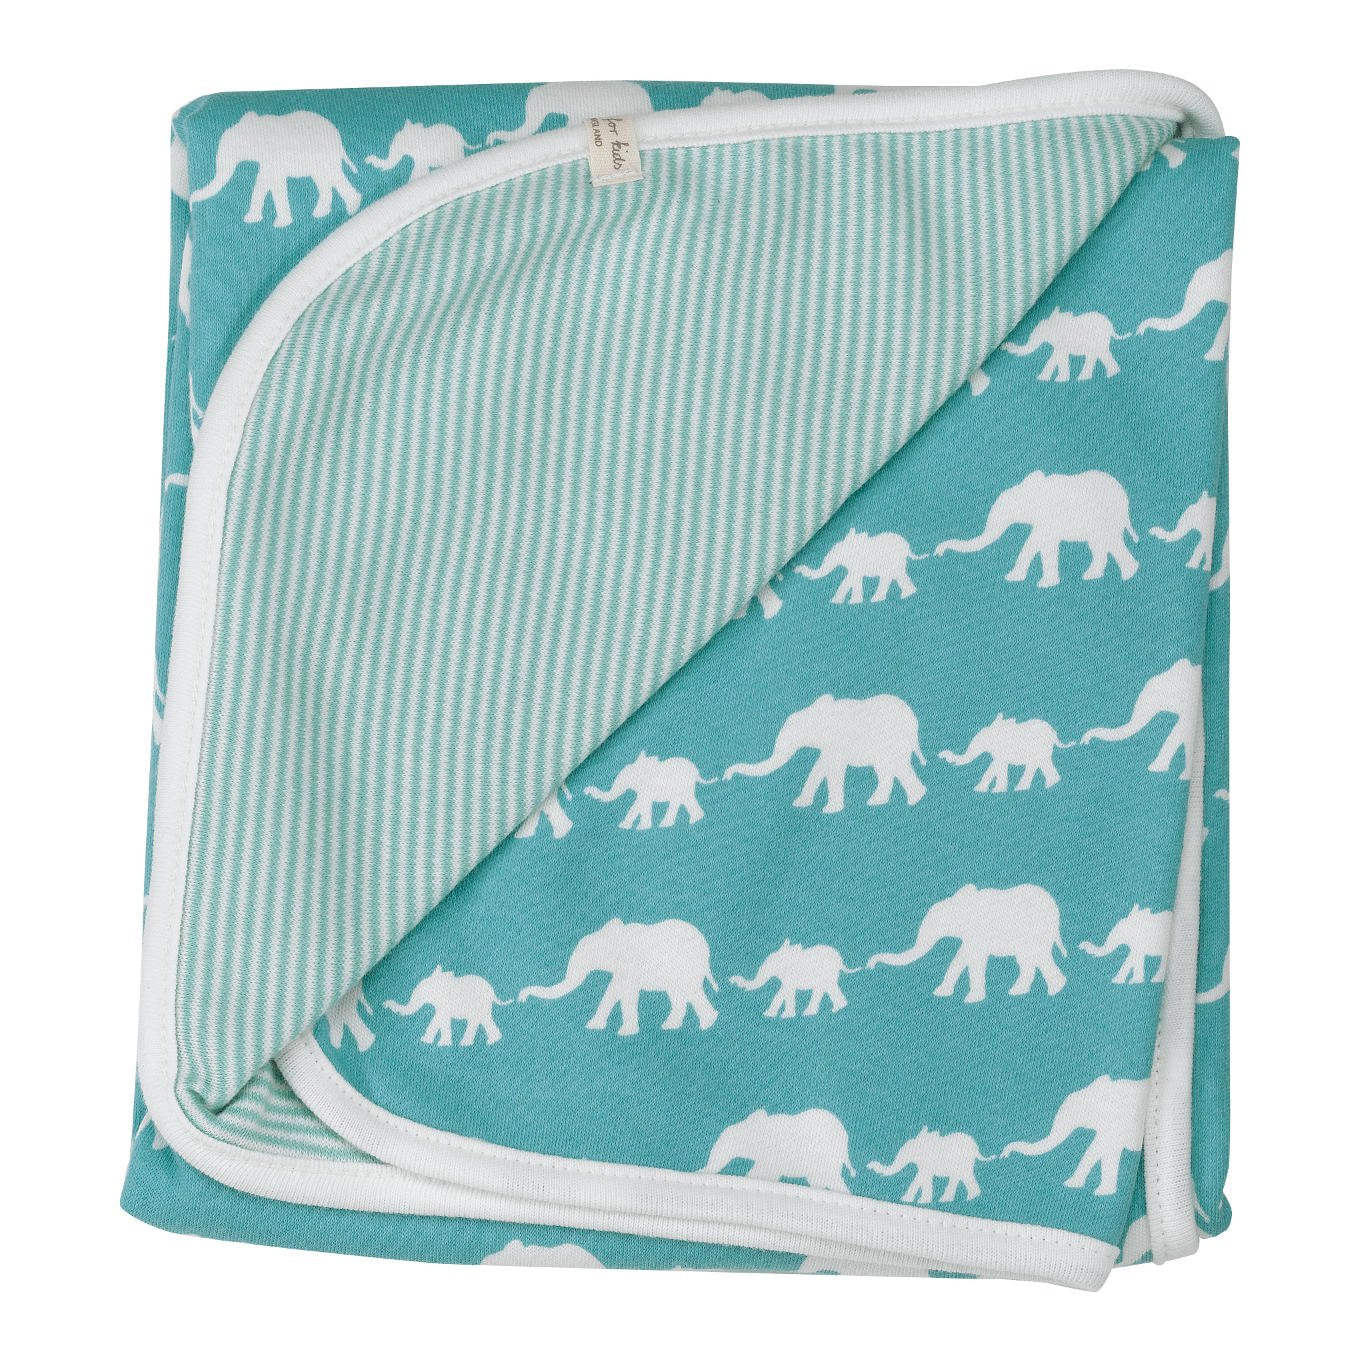 Elephant Blanket in Blue